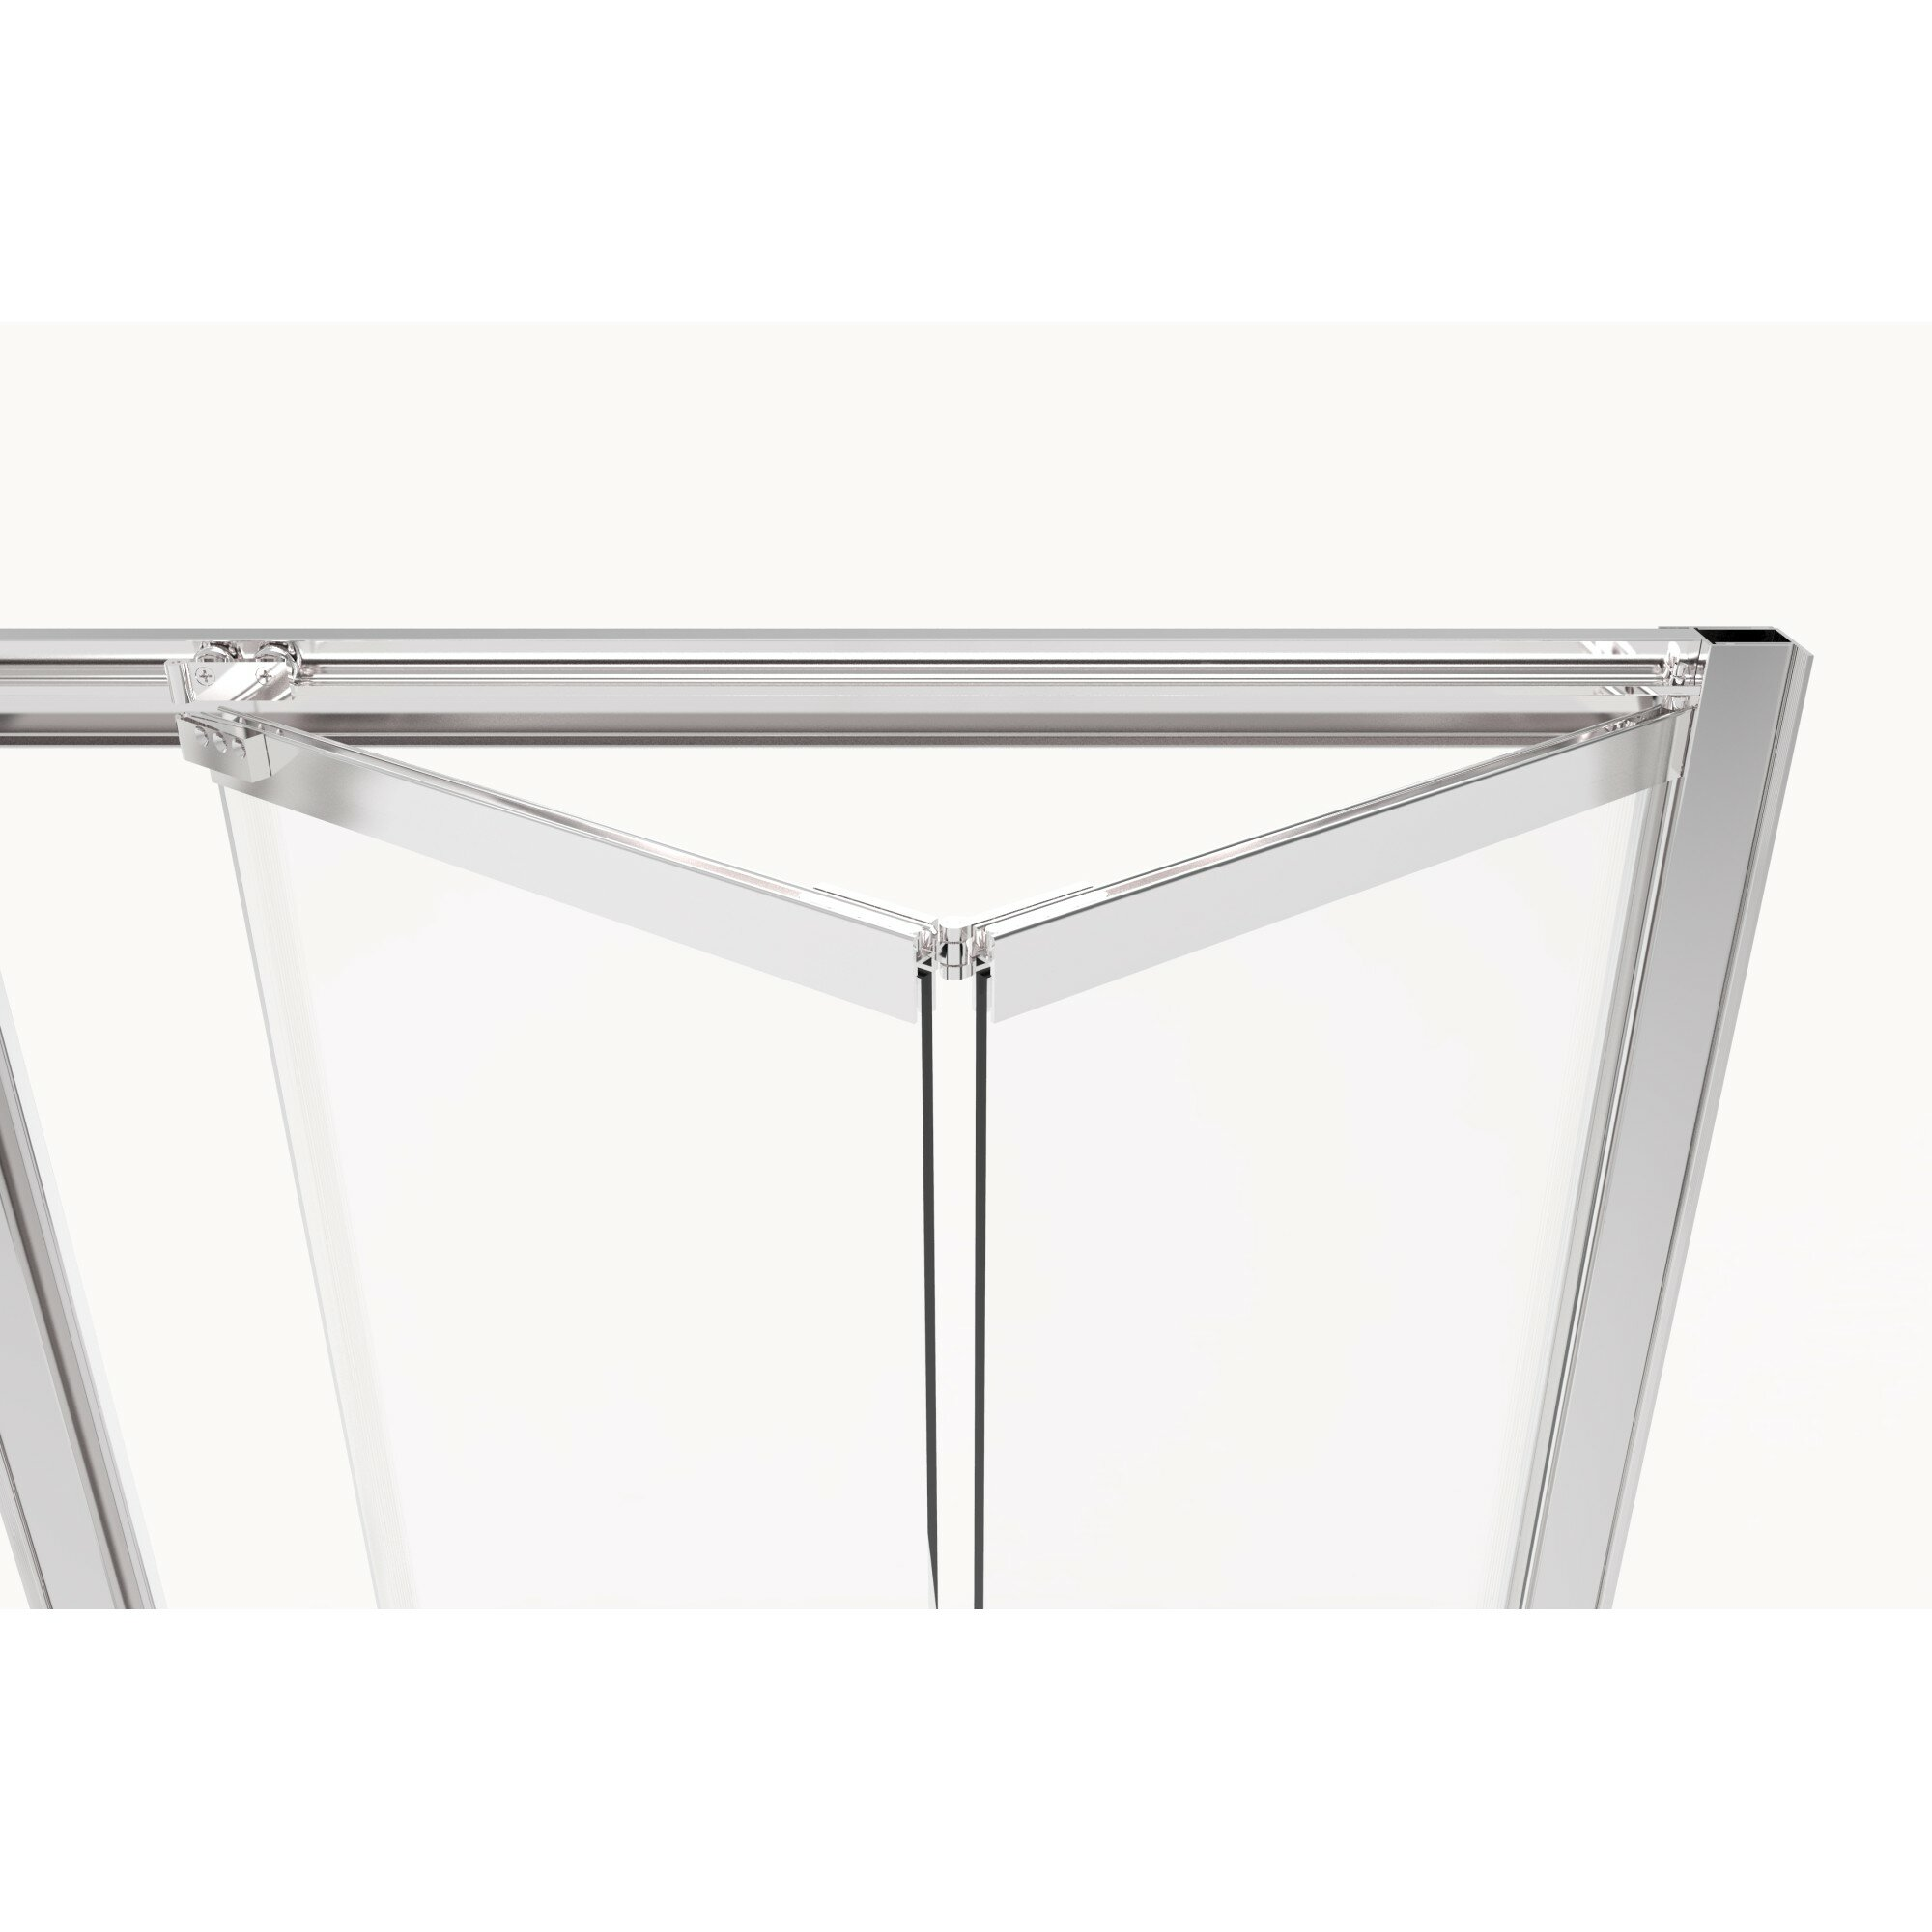 Details About Infinity Bifold 31 X67 Folding Semi Frameless Shower Door Brushed Nickel Clear